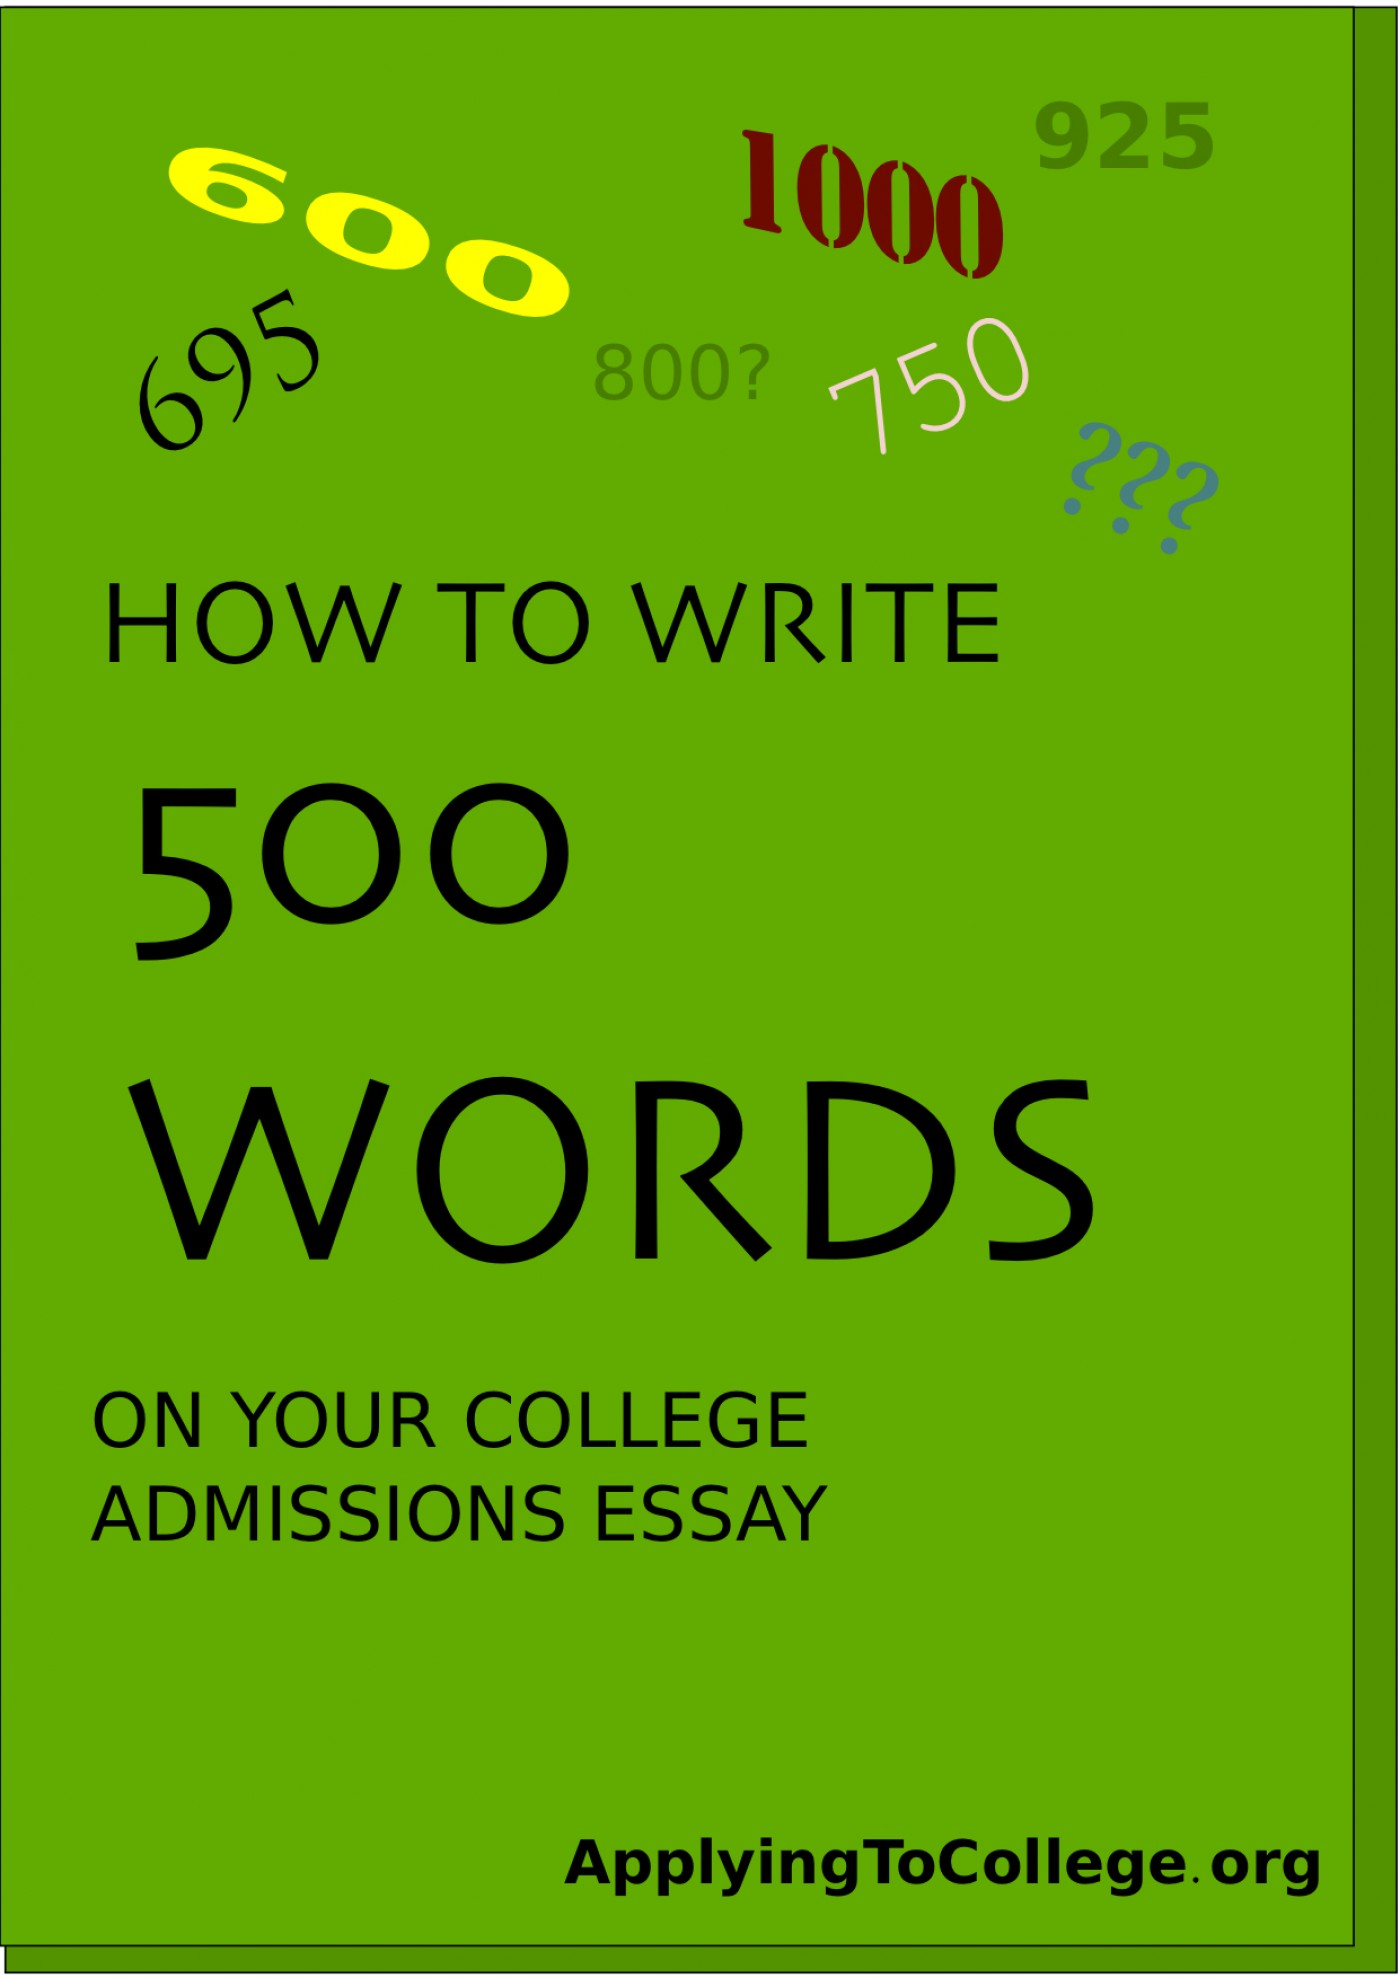 003 2903628546 Word Count For Common Application Essay College Beautiful Maximum 2018 1400